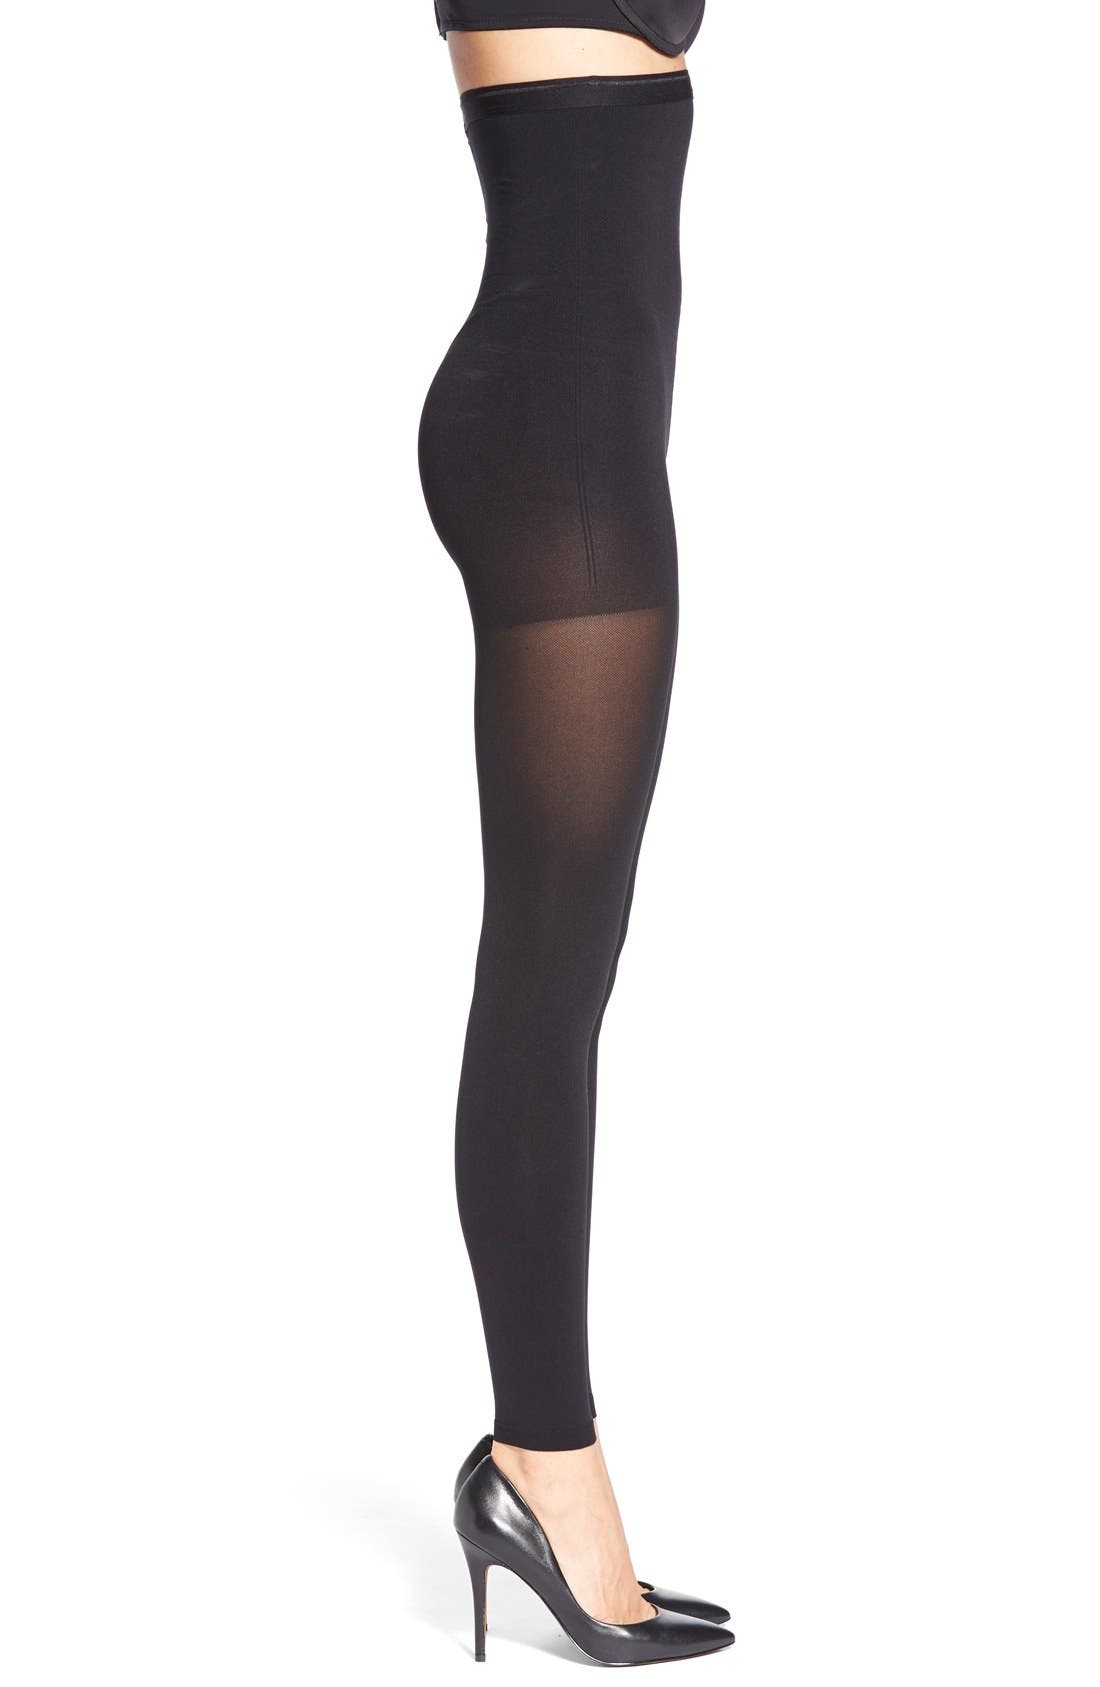 High Rise Opaque Footless Shaping Tights,                             Main thumbnail 1, color,                             BLACK